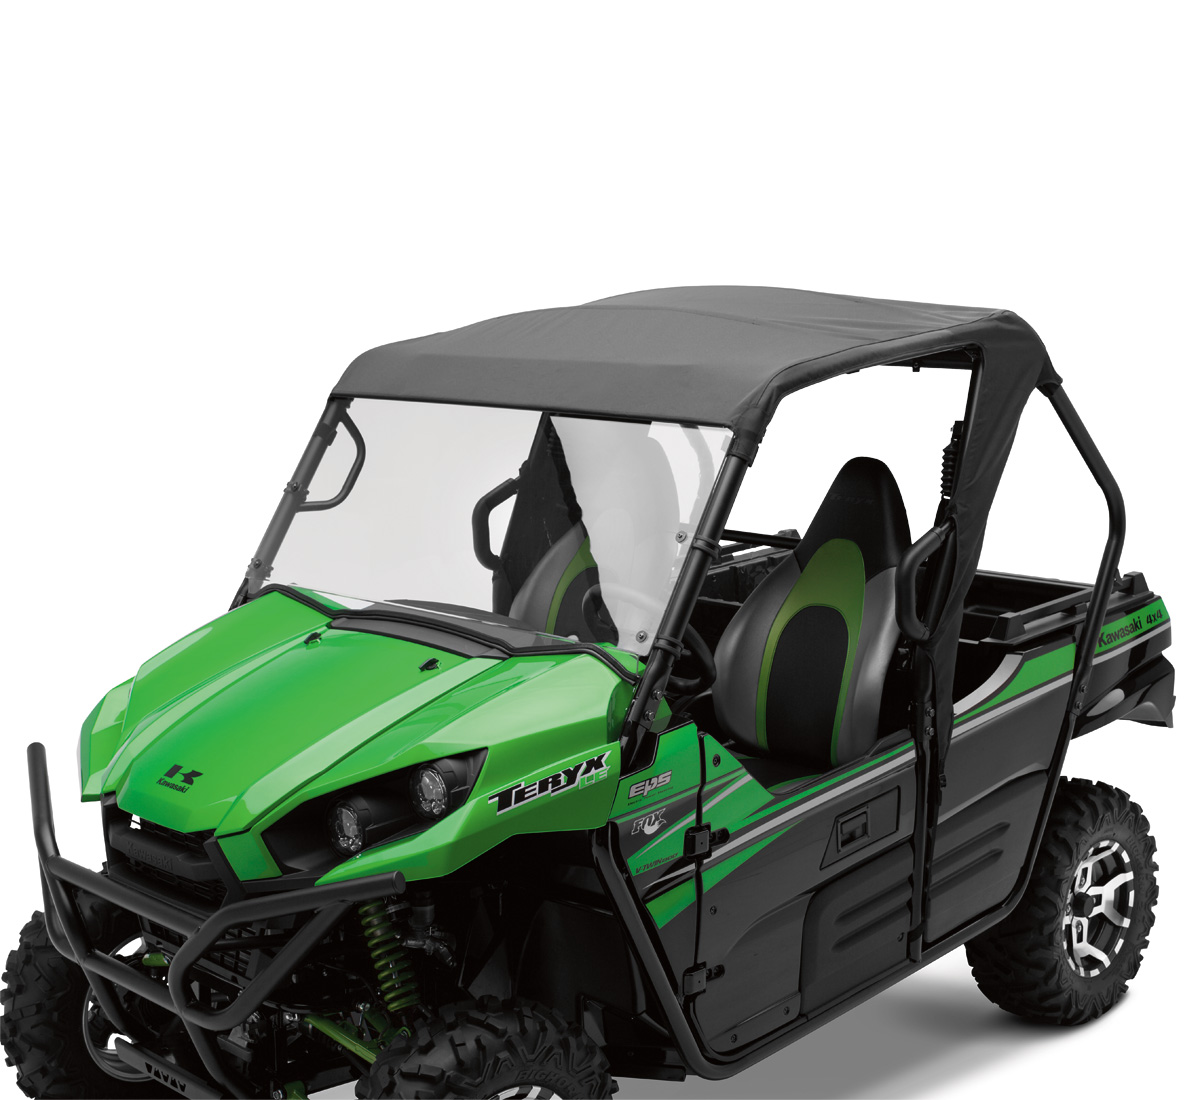 2015 Kawasaki Teryx Wiring Diagram Electrical Diagrams 2018 Le Side X By Brute Force